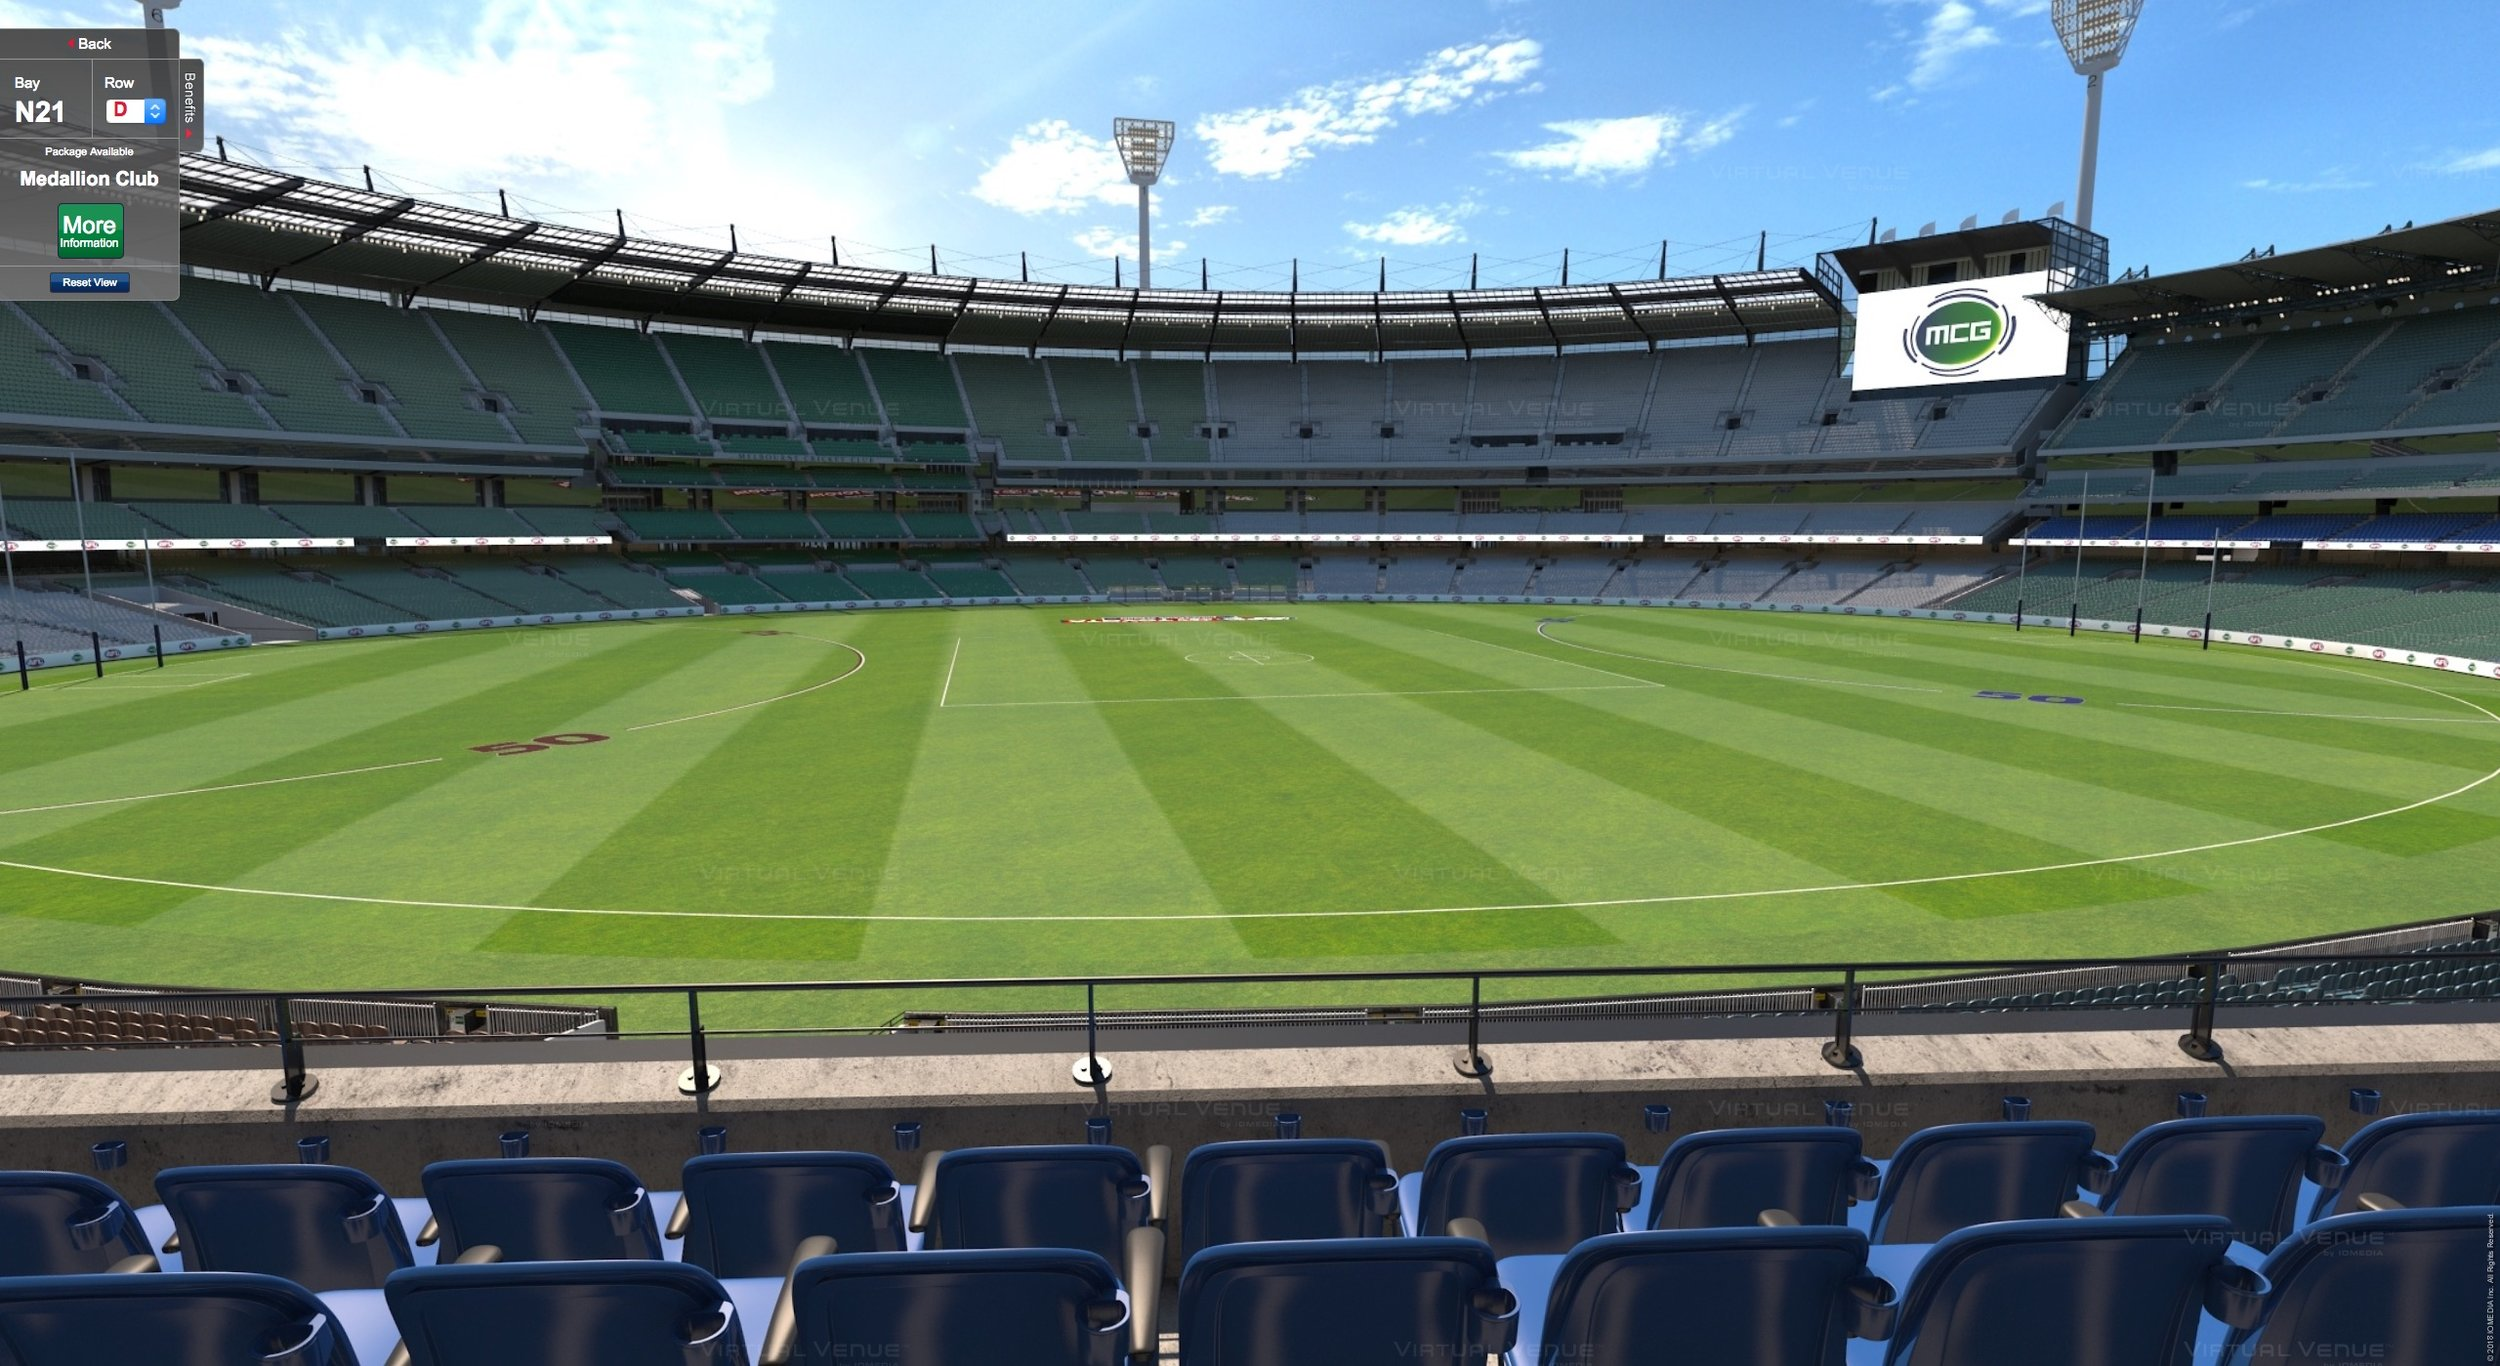 Essendon v Collingwood MCG Medallion Club seating